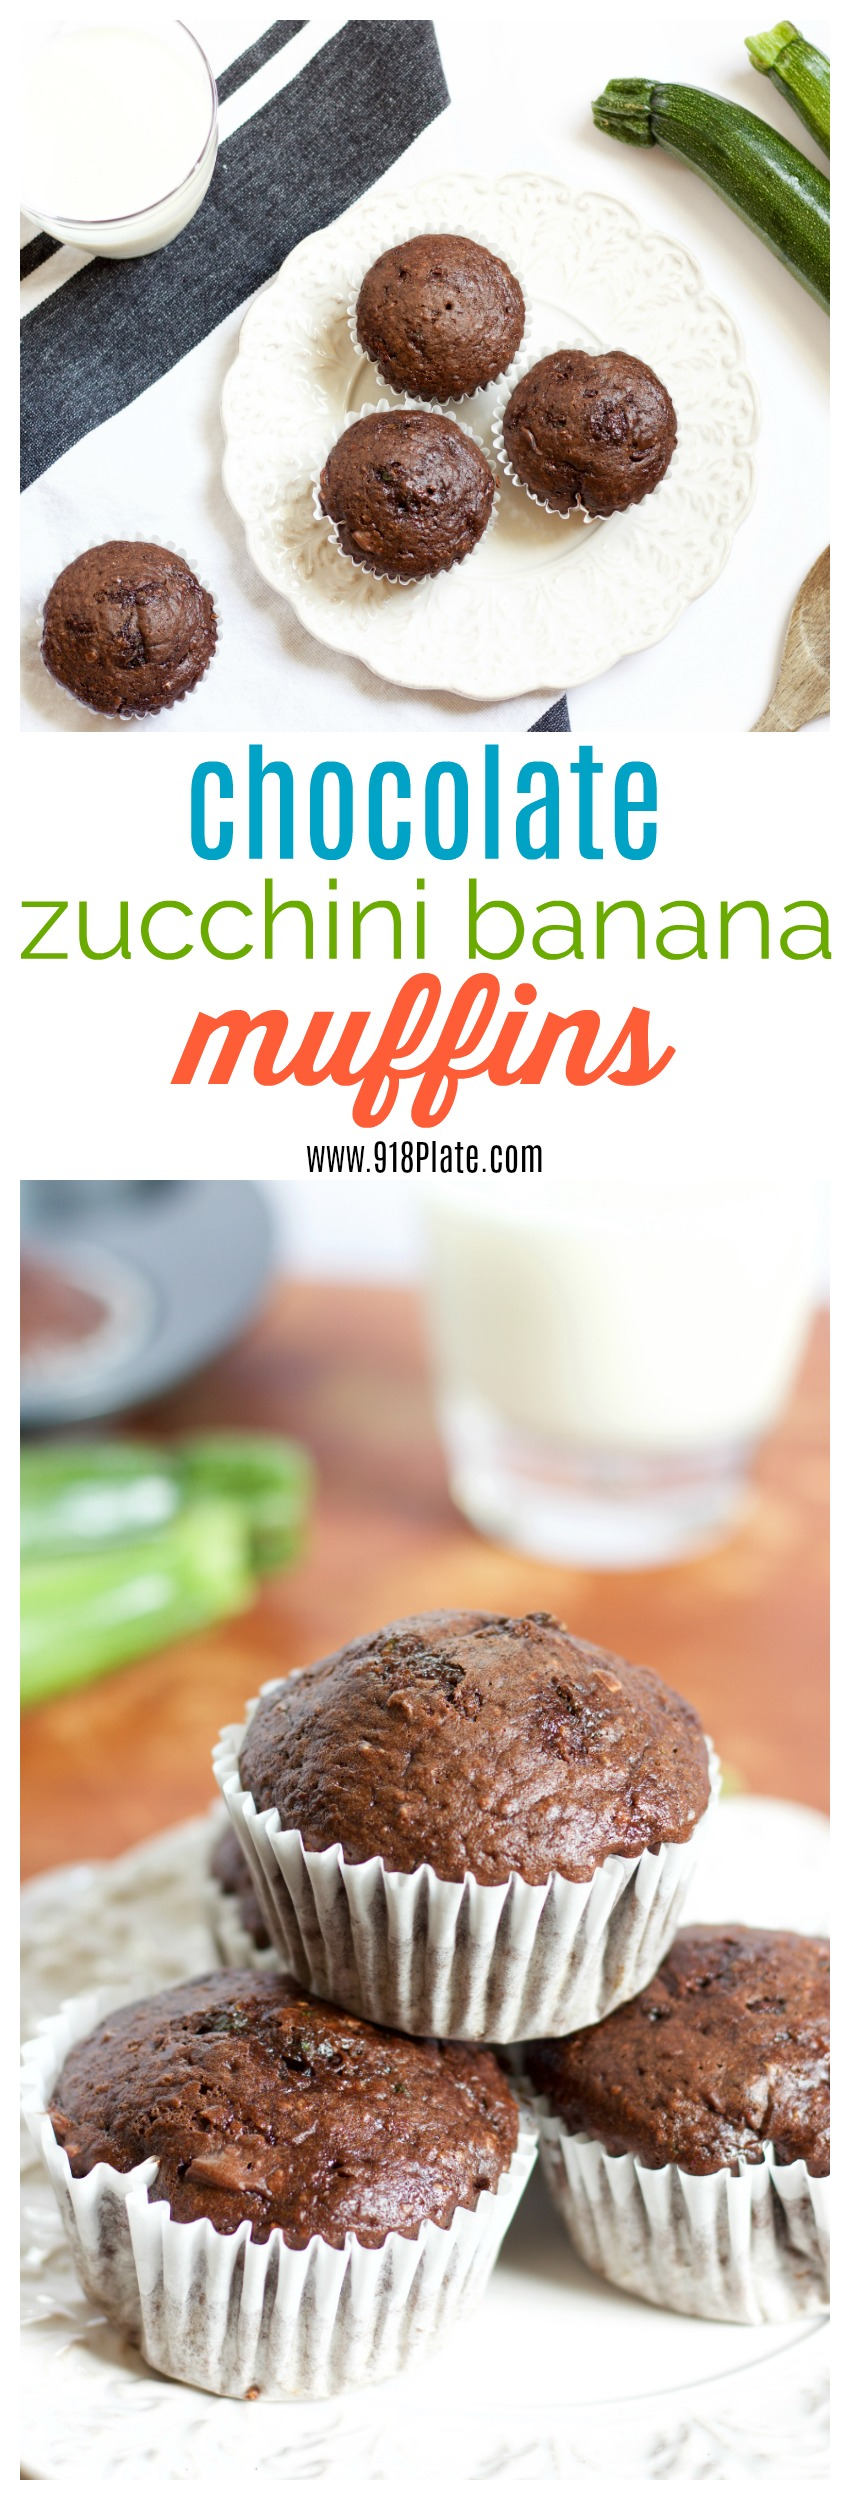 These chocolate zucchini banana muffins are filling, tasty, and have a touch of sweetness to satisfy your chocolate craving.